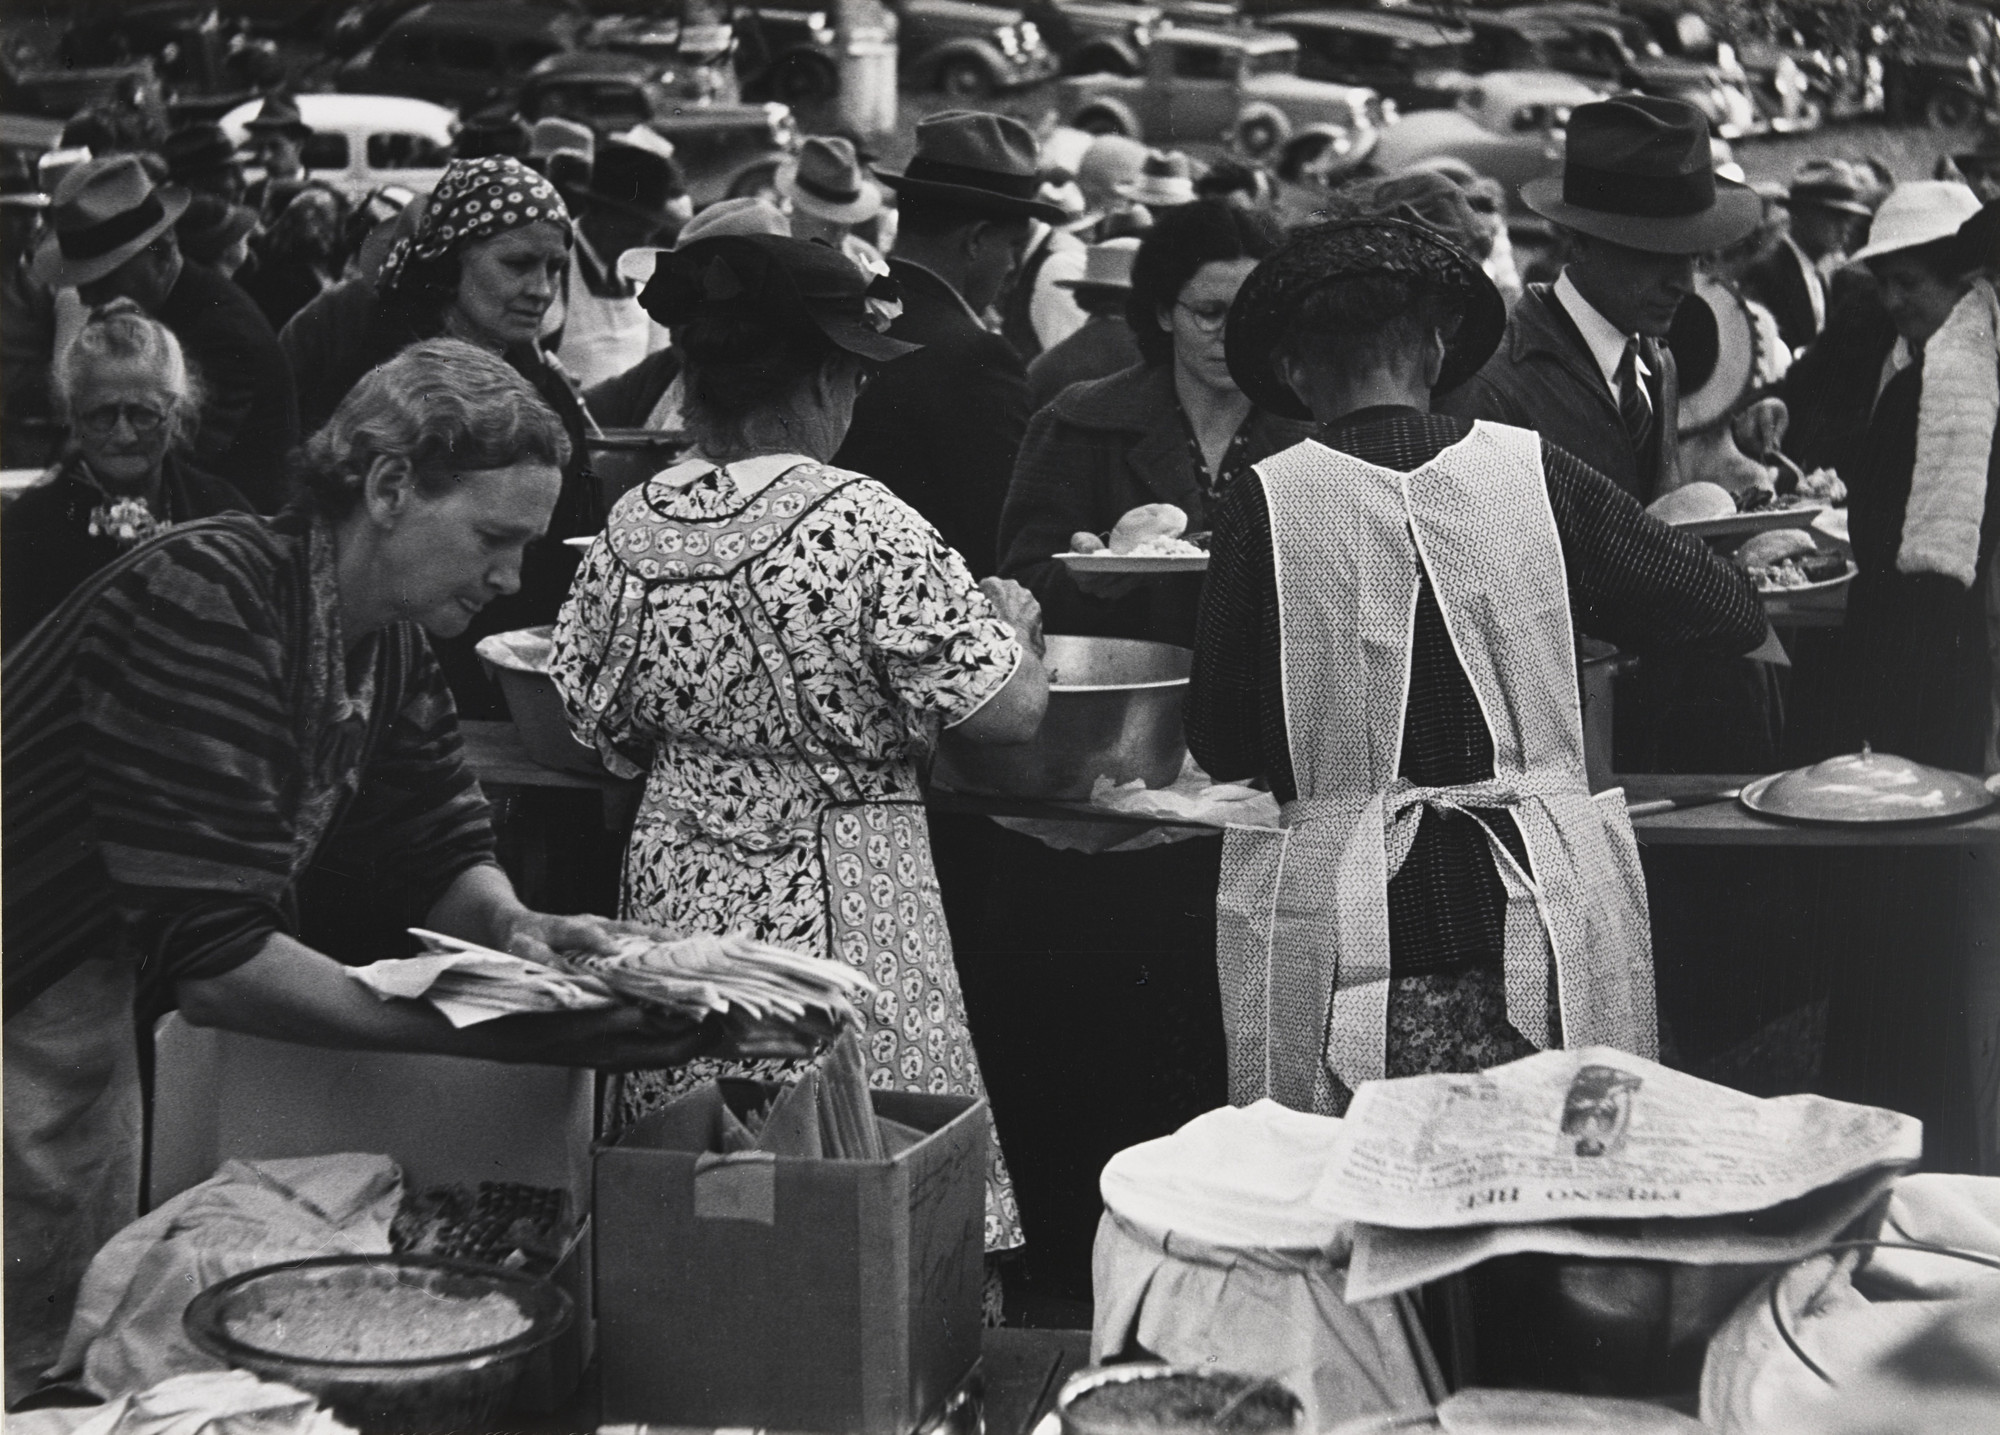 Ansel Adams. Barbecue, Hornitos, California. 1938